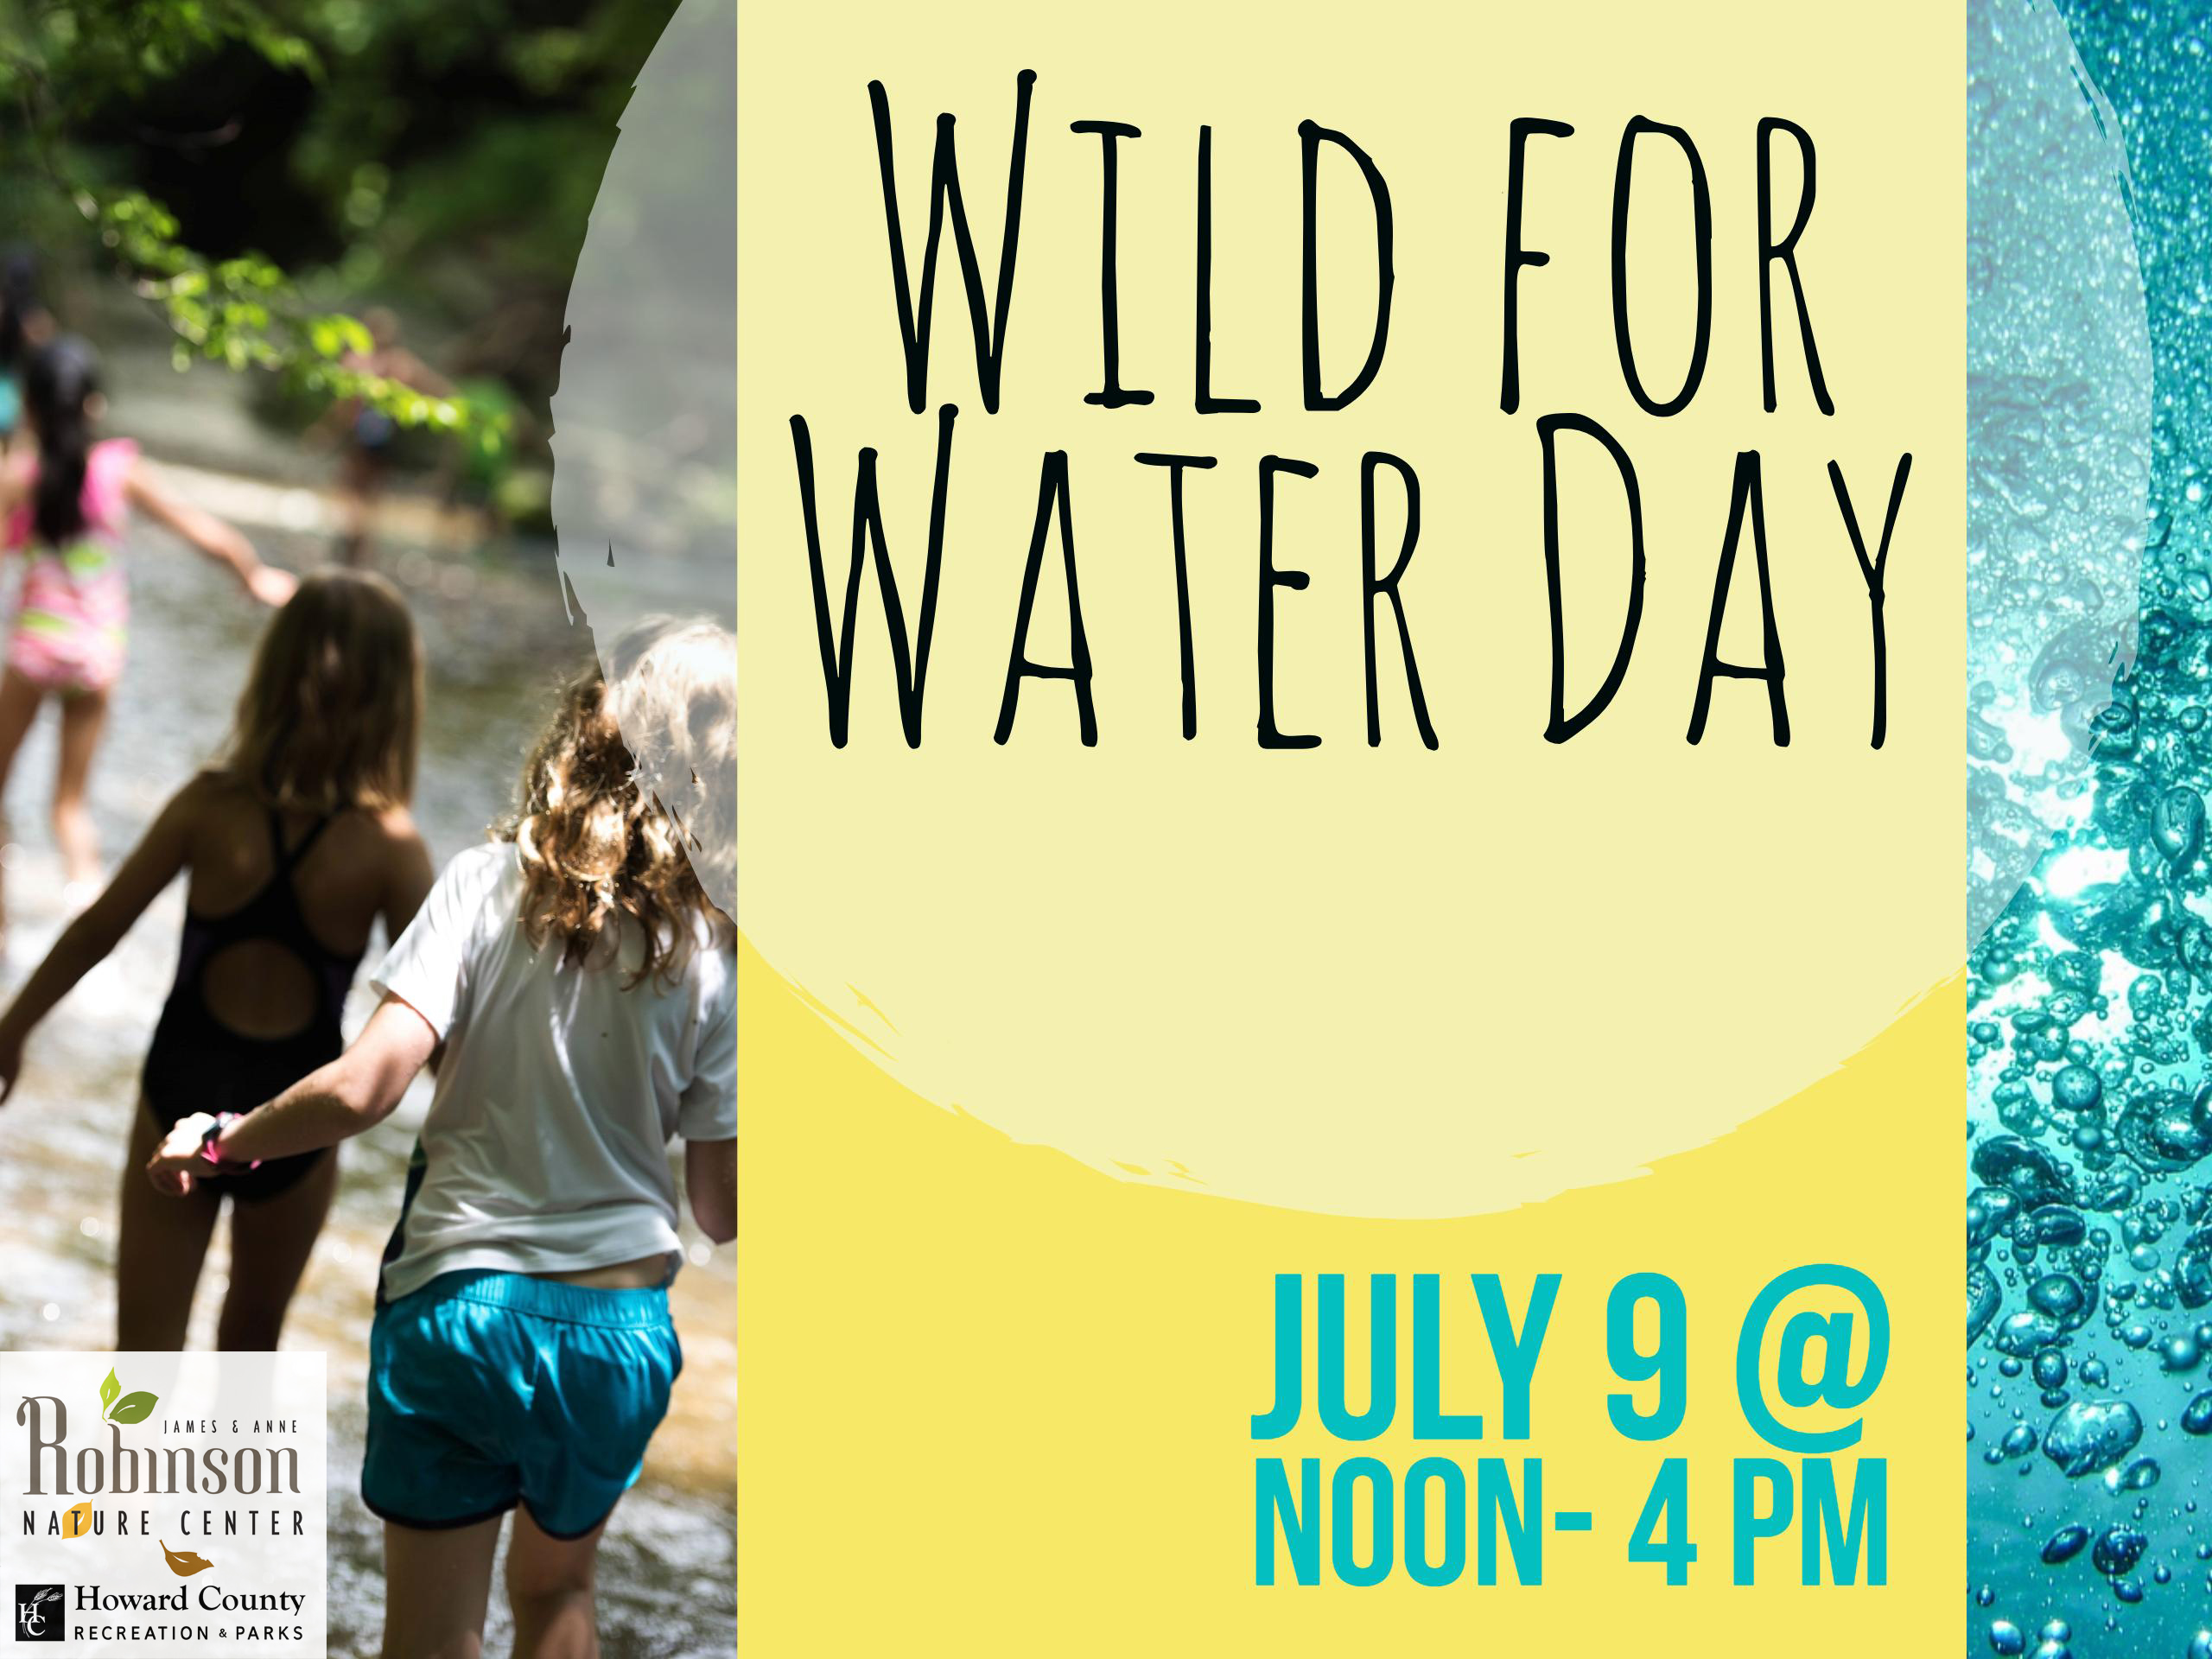 Wild for Water Day